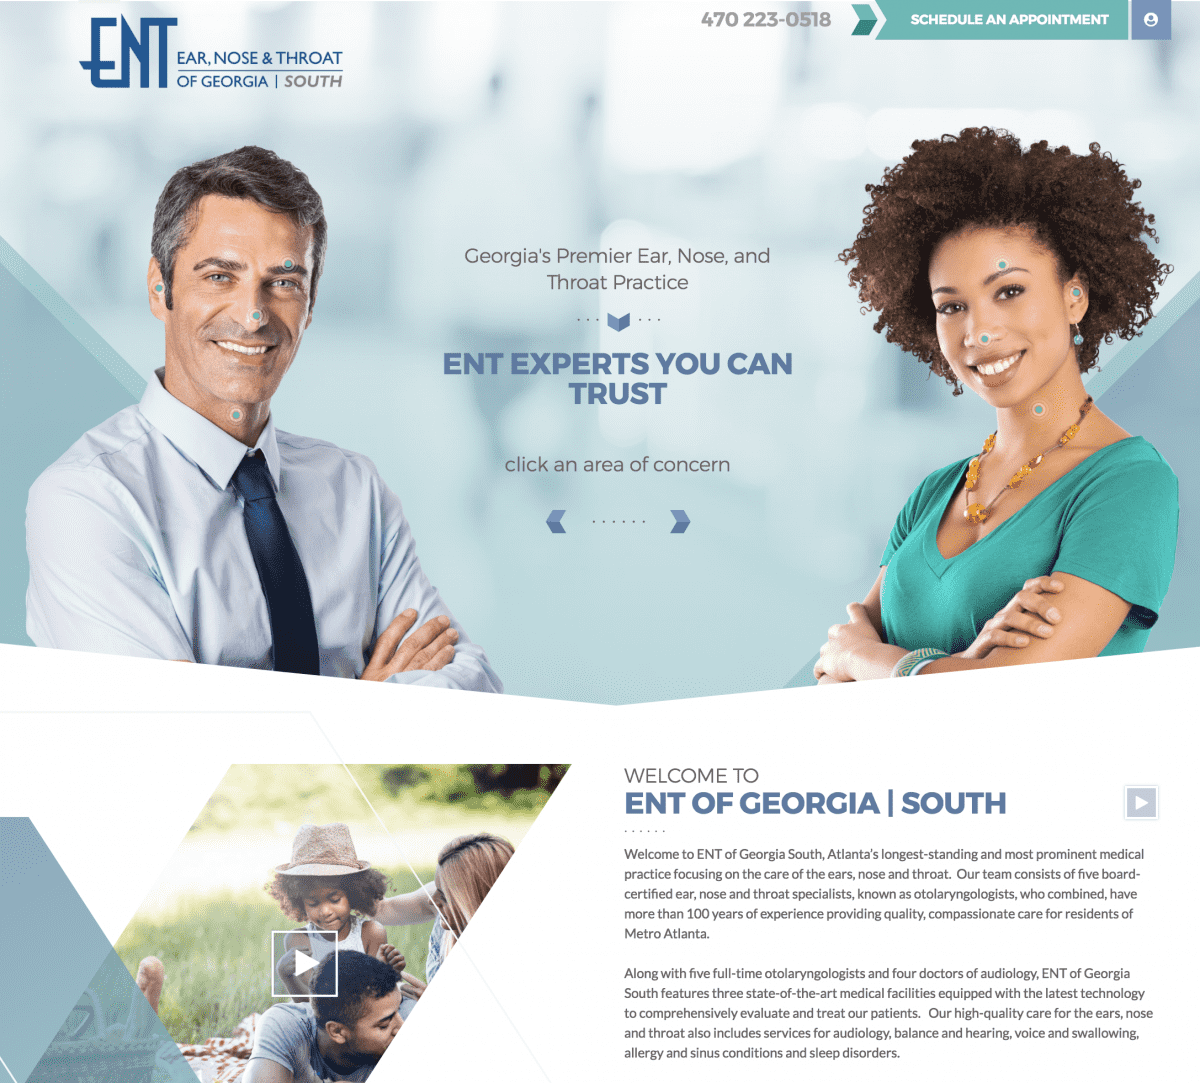 Image of website for ENT of Georgia South